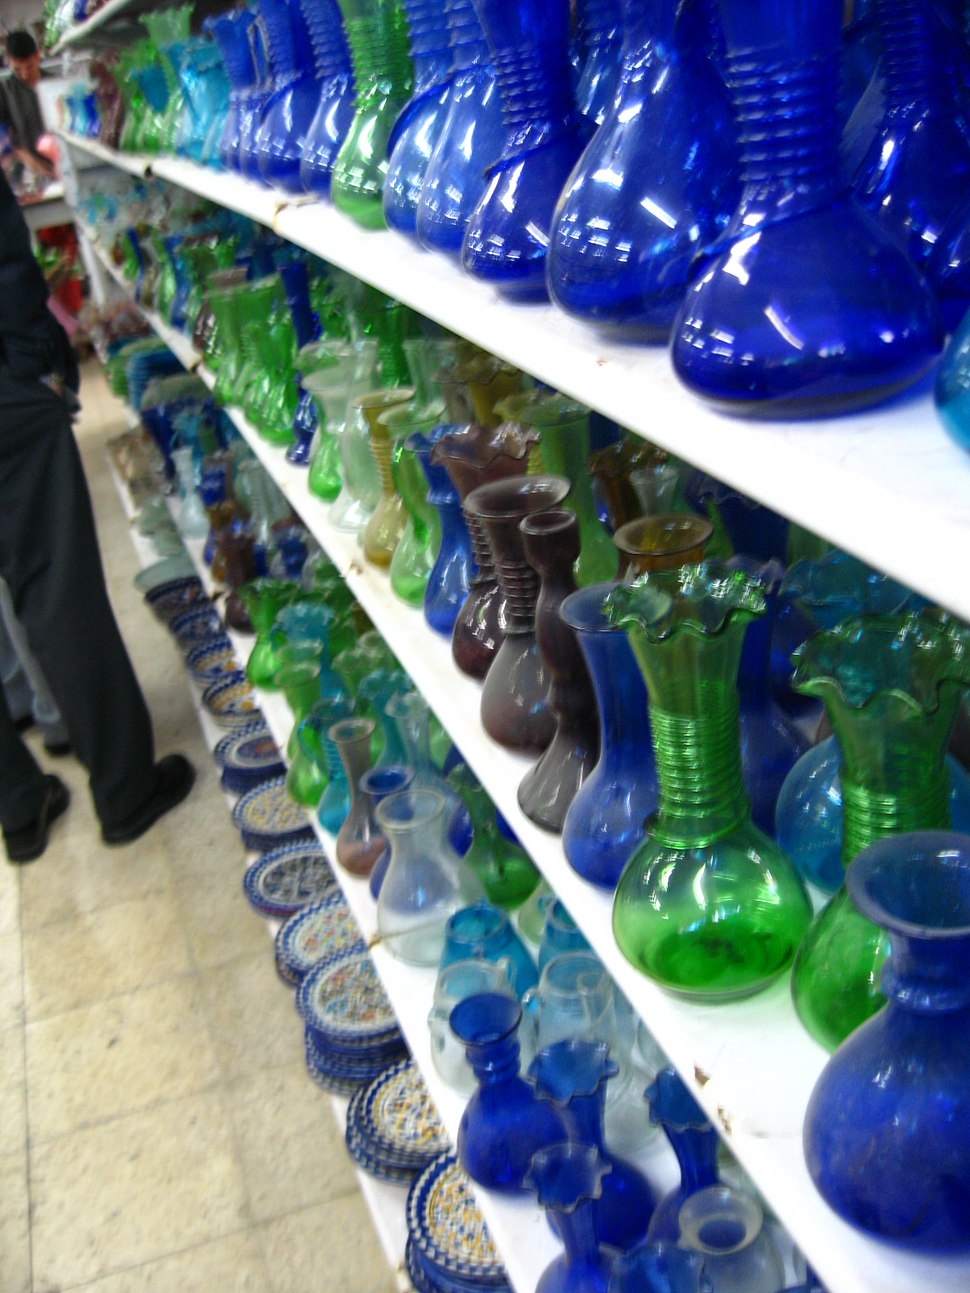 Hebron glass finished products - Joff Williams